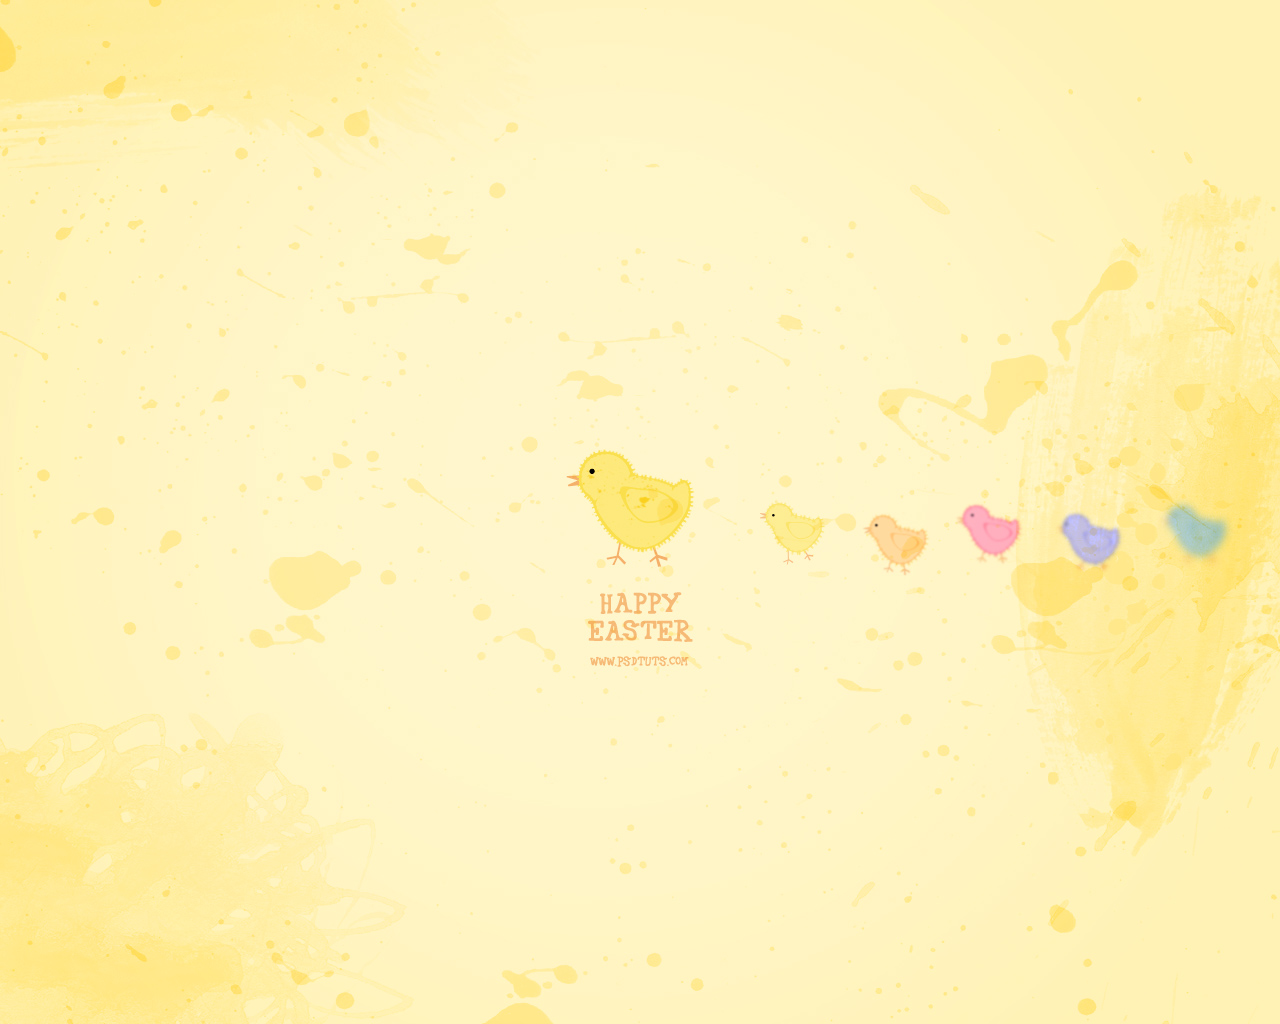 Super Cute Easter Wallpaper Illustration Tutorial 1280x1024